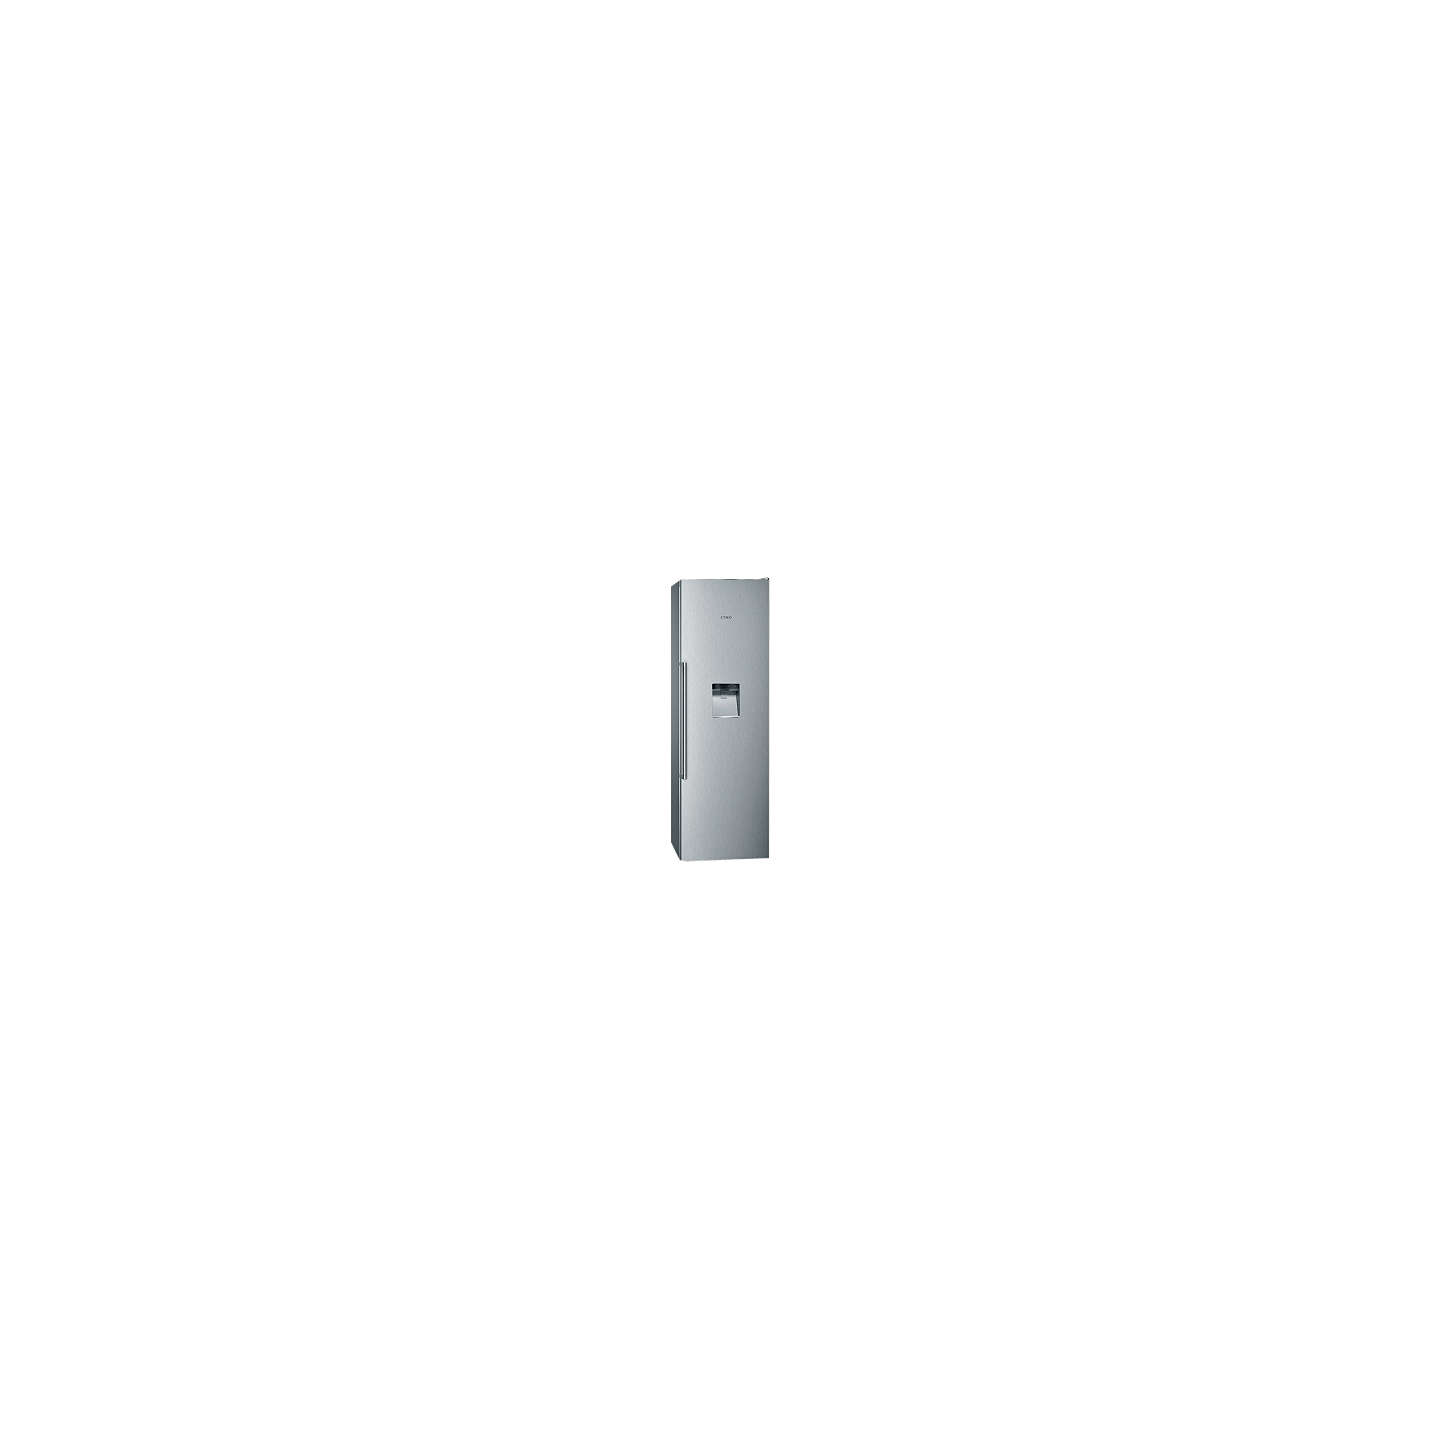 BuySiemens GS36DPI20 Freezer, A+ Energy Rating, 60cm Wide, Stainless Steel Online at johnlewis.com